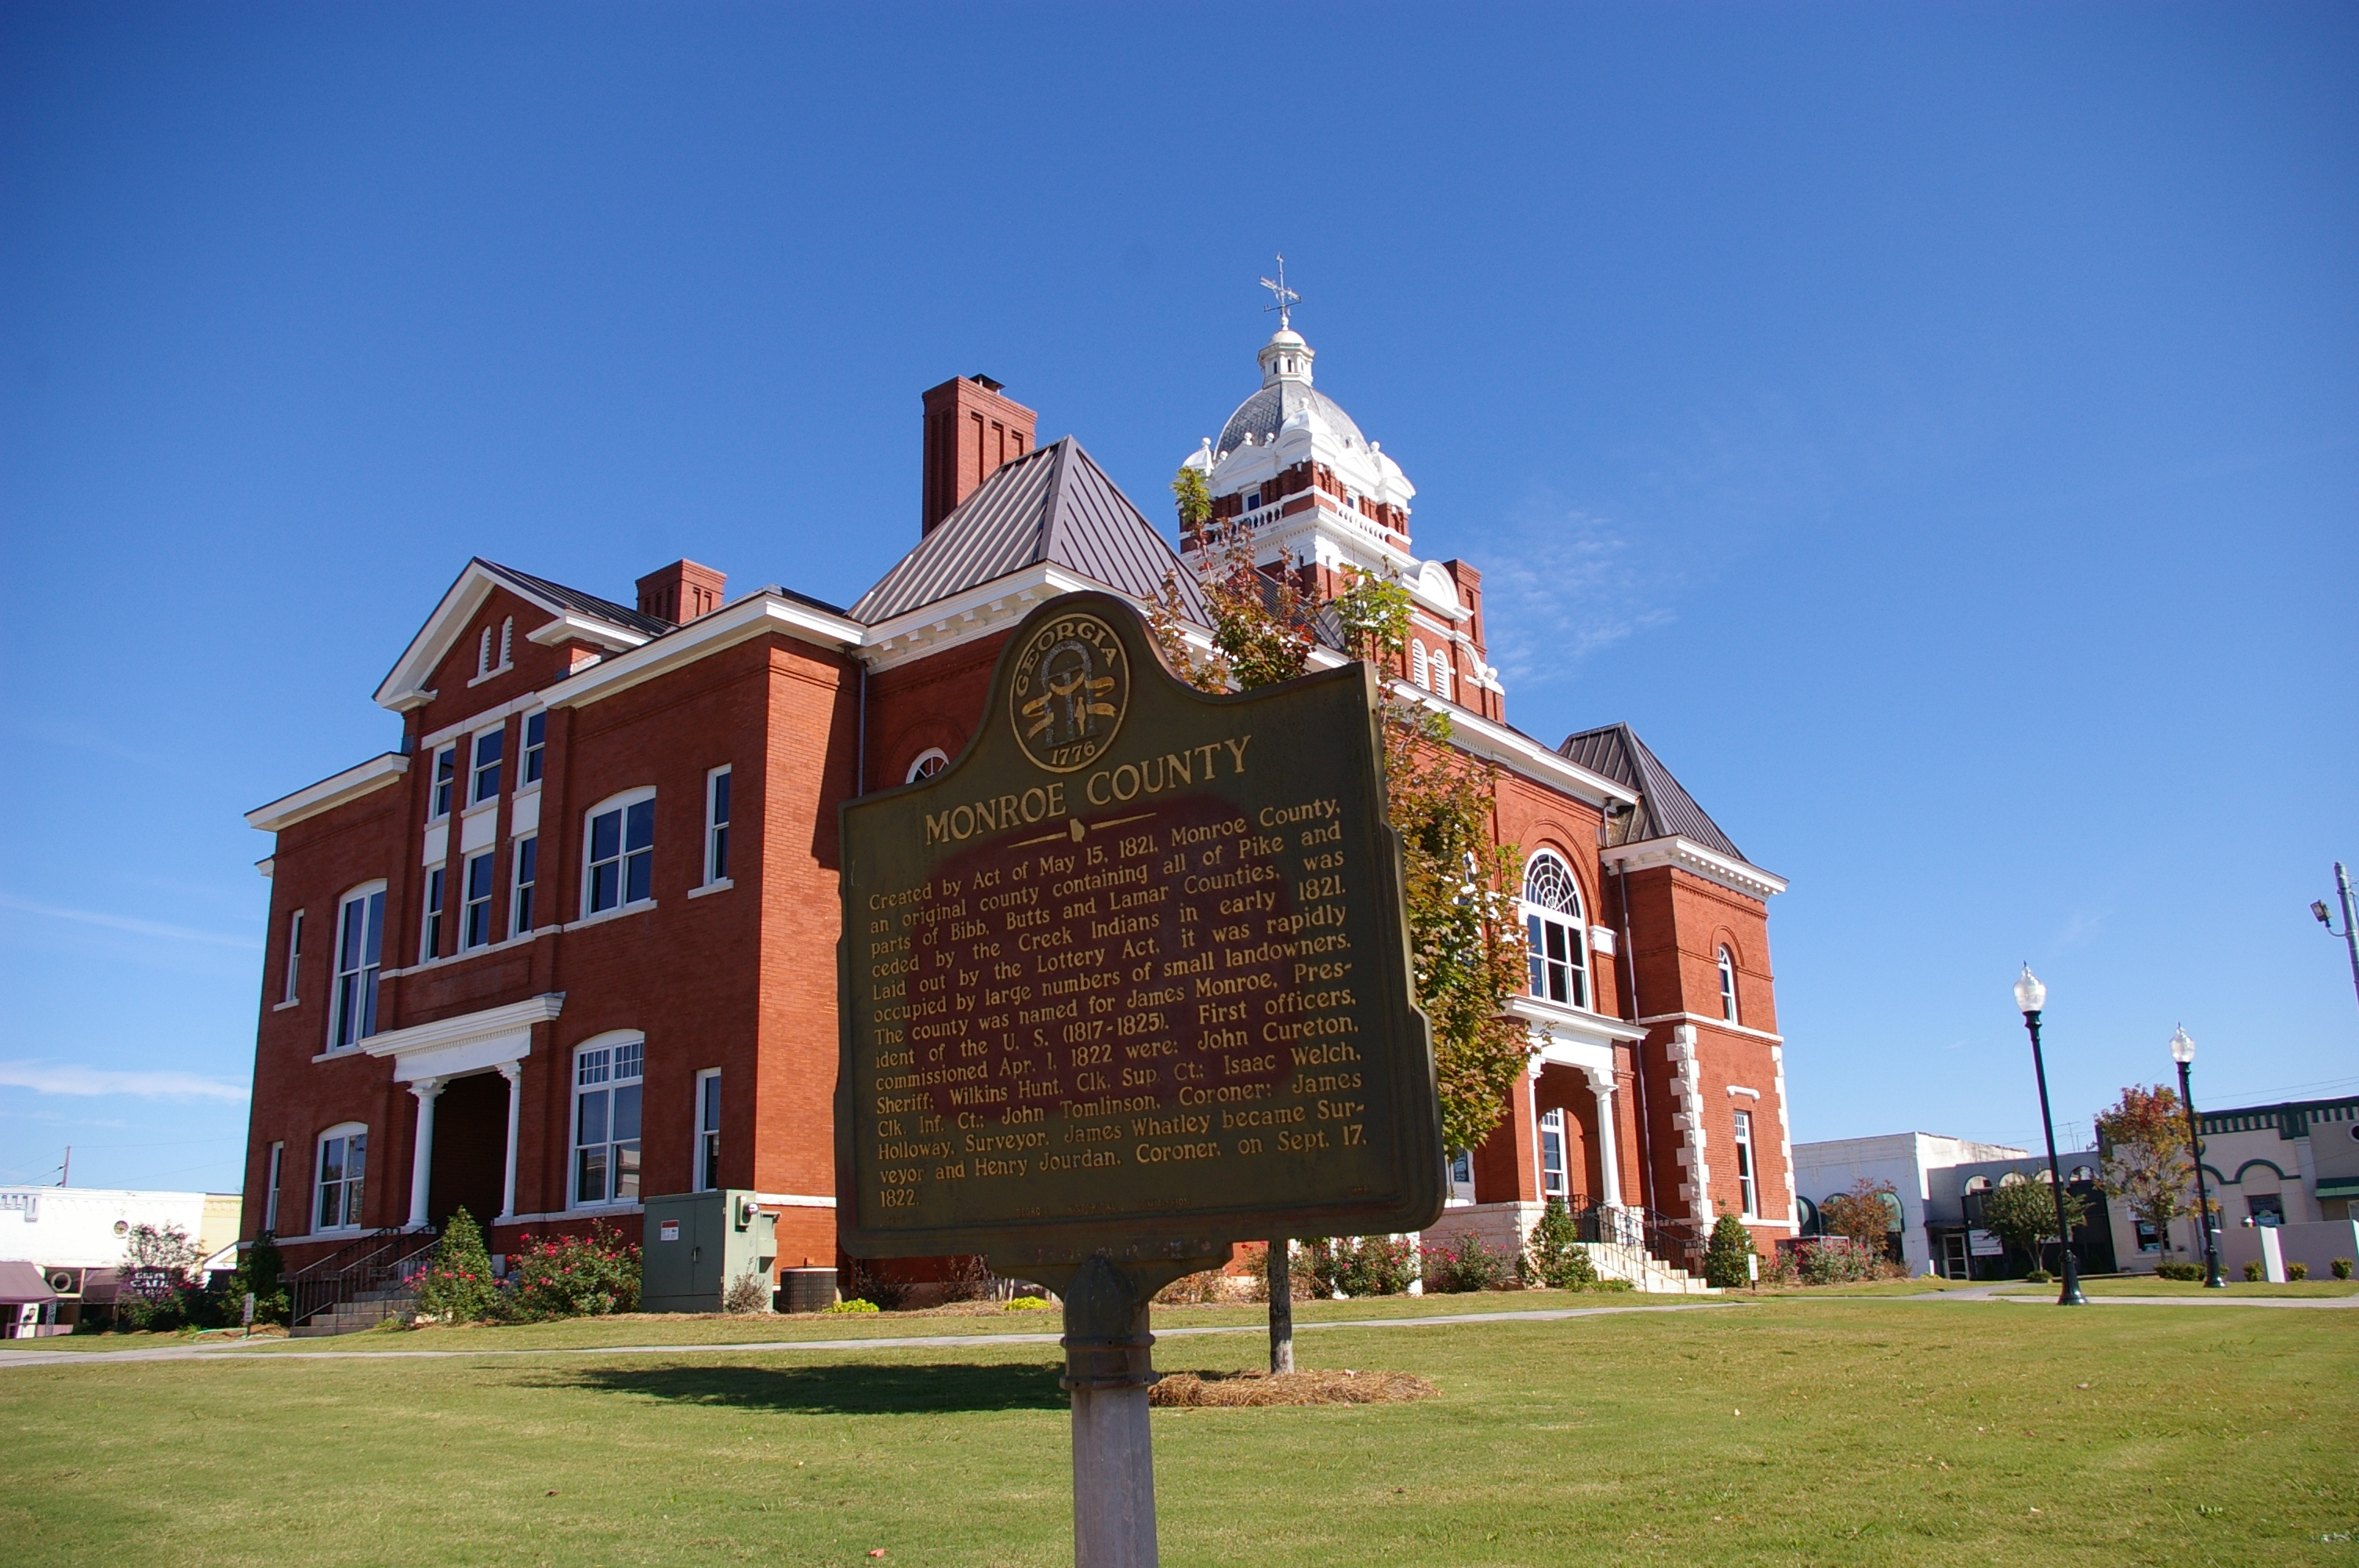 Monroe County Marker and Courthouse